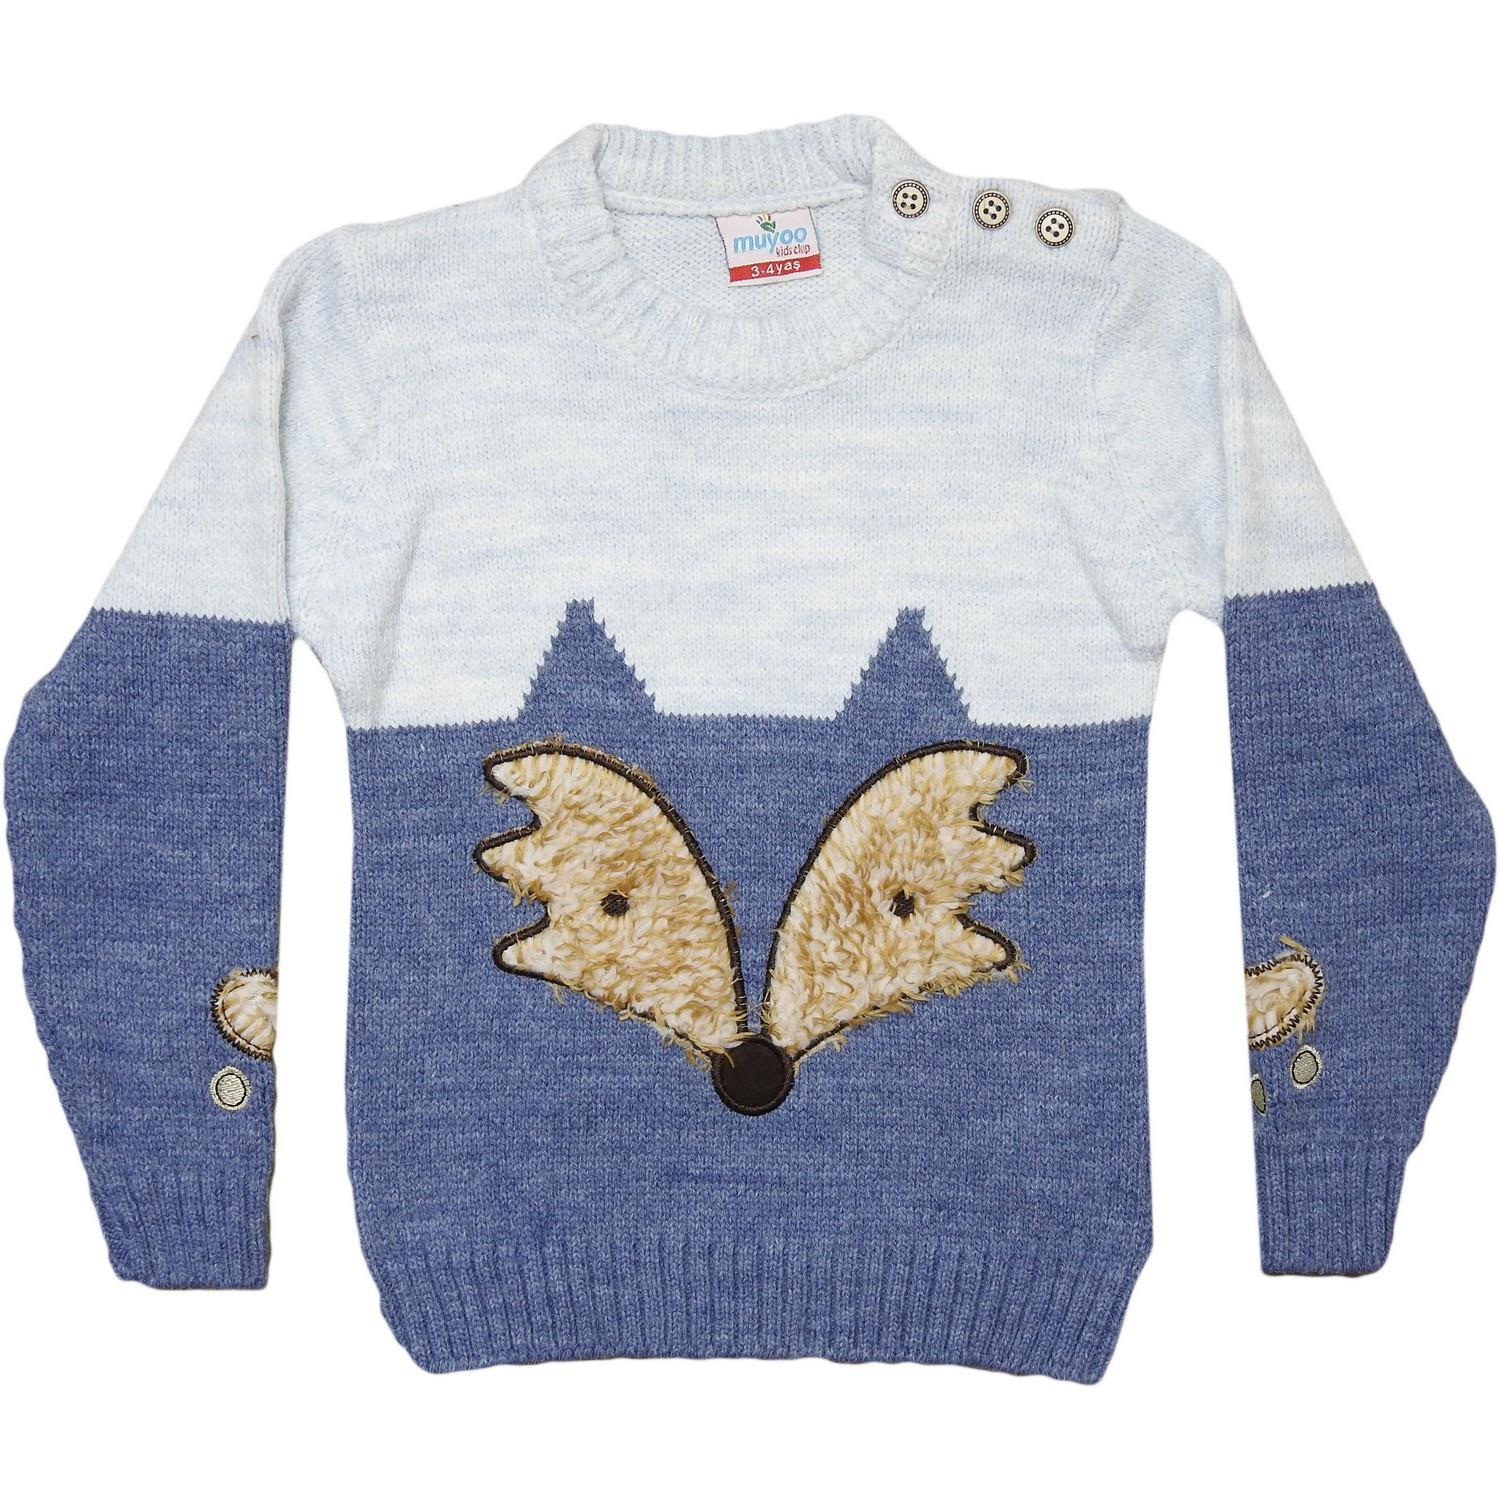 1115 wholesale boys sweater 1-2-3-4 years